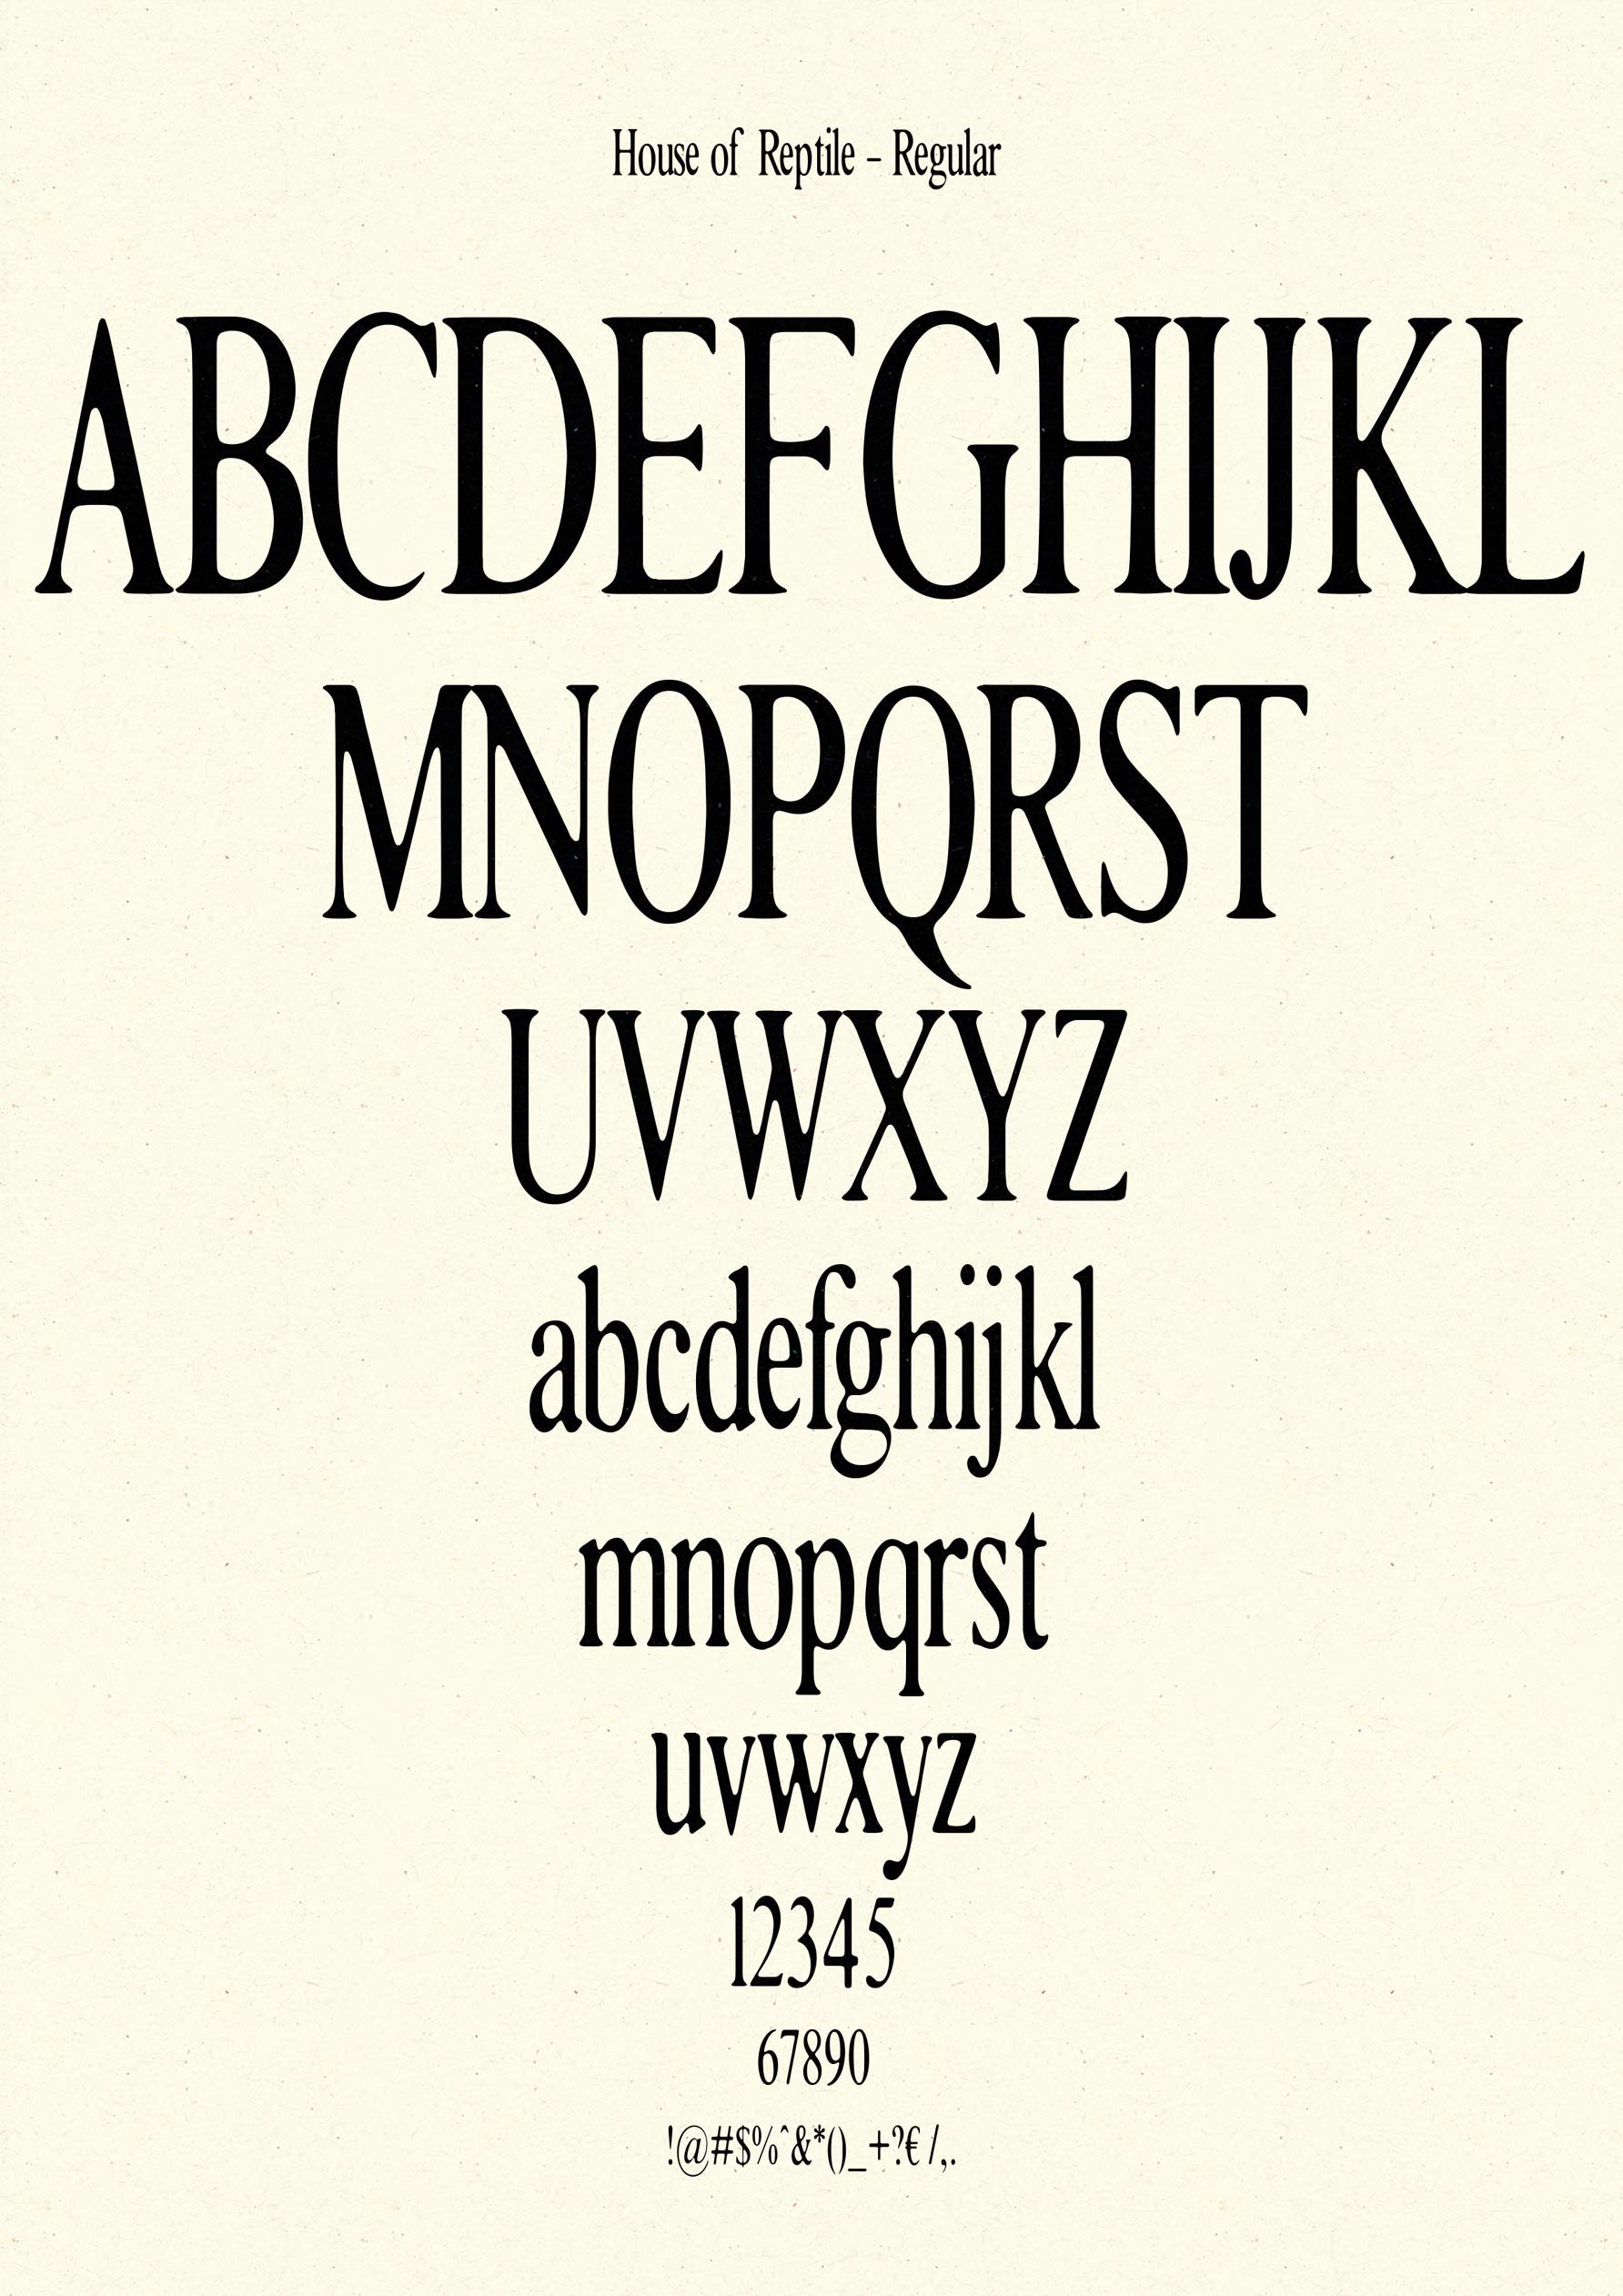 House of Reptile - Typeface